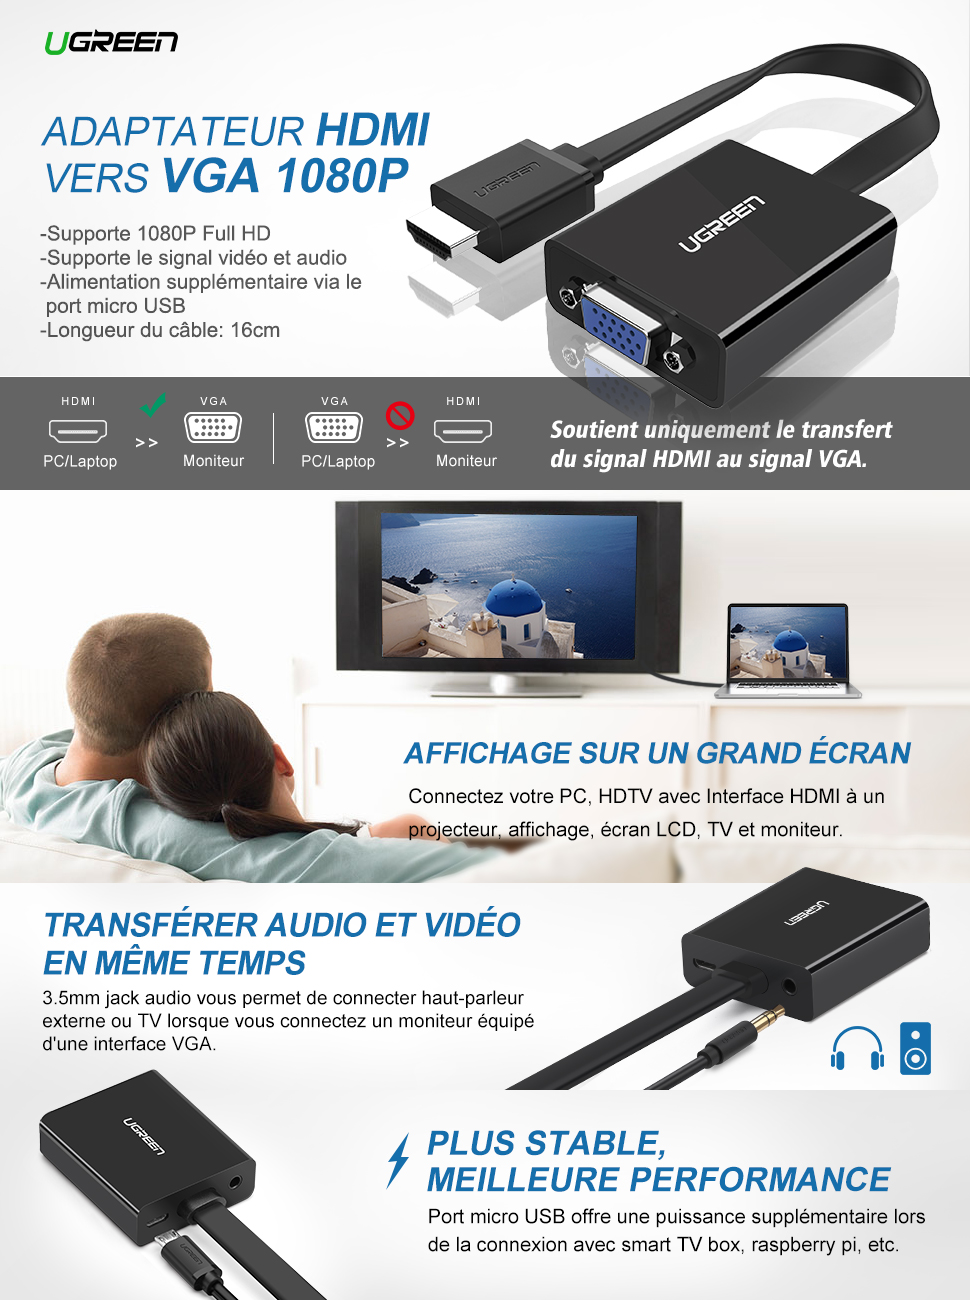 ugreen adaptateur hdmi vers vga 1080p avec sortie audio. Black Bedroom Furniture Sets. Home Design Ideas